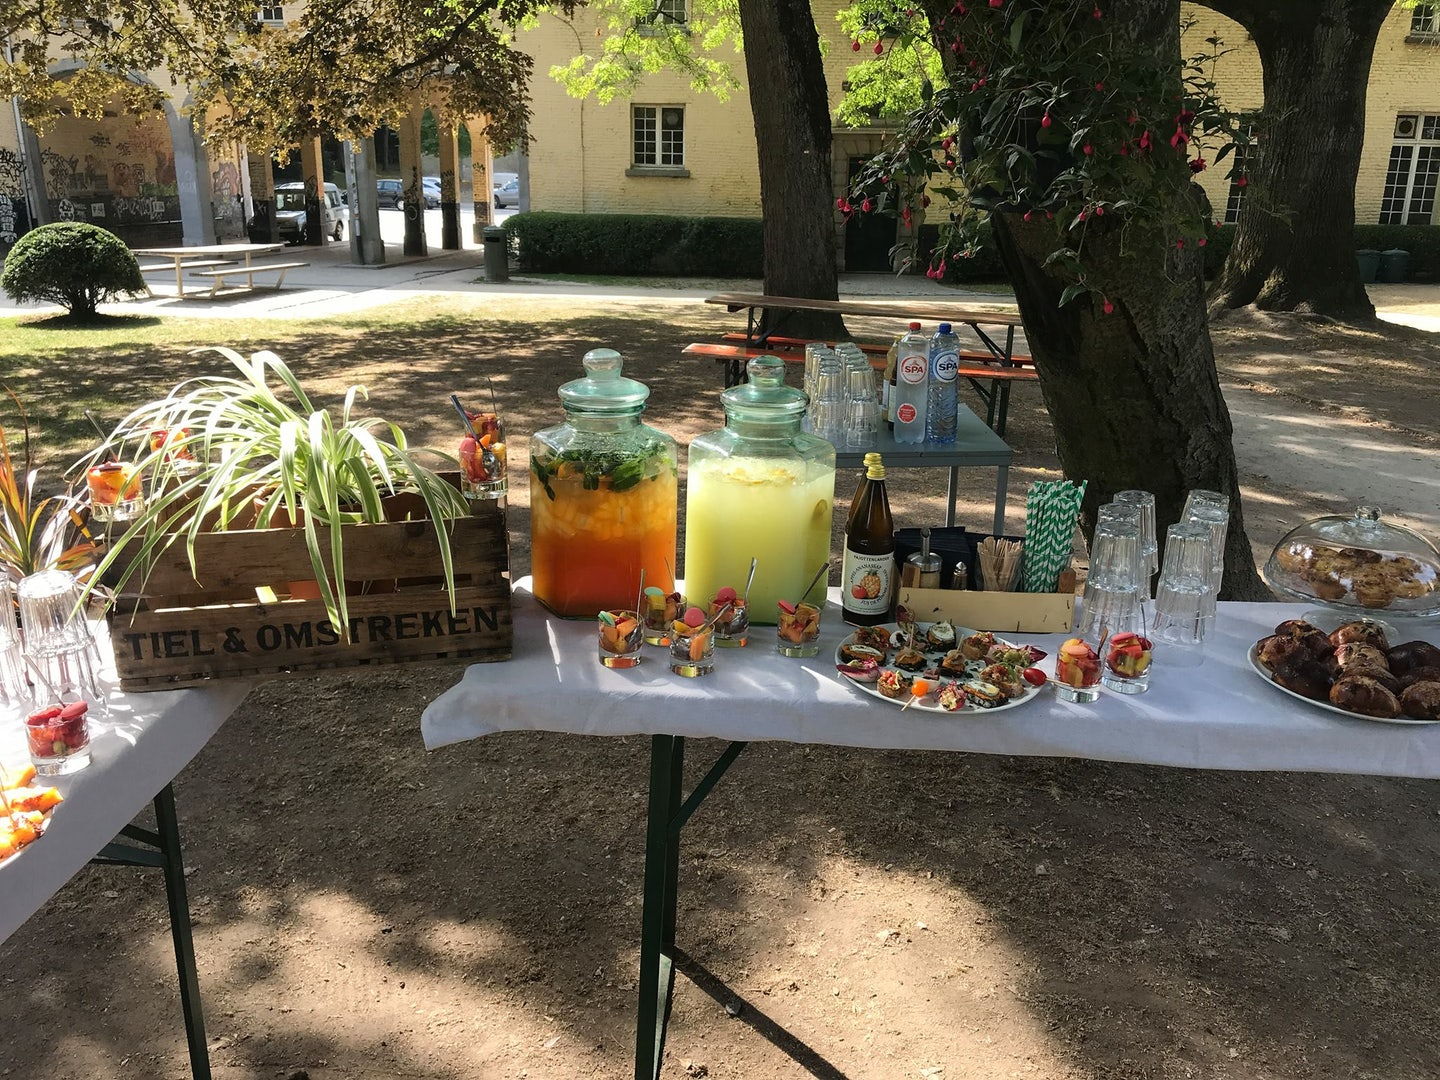 lemonade and snacks made by Bar Gisele